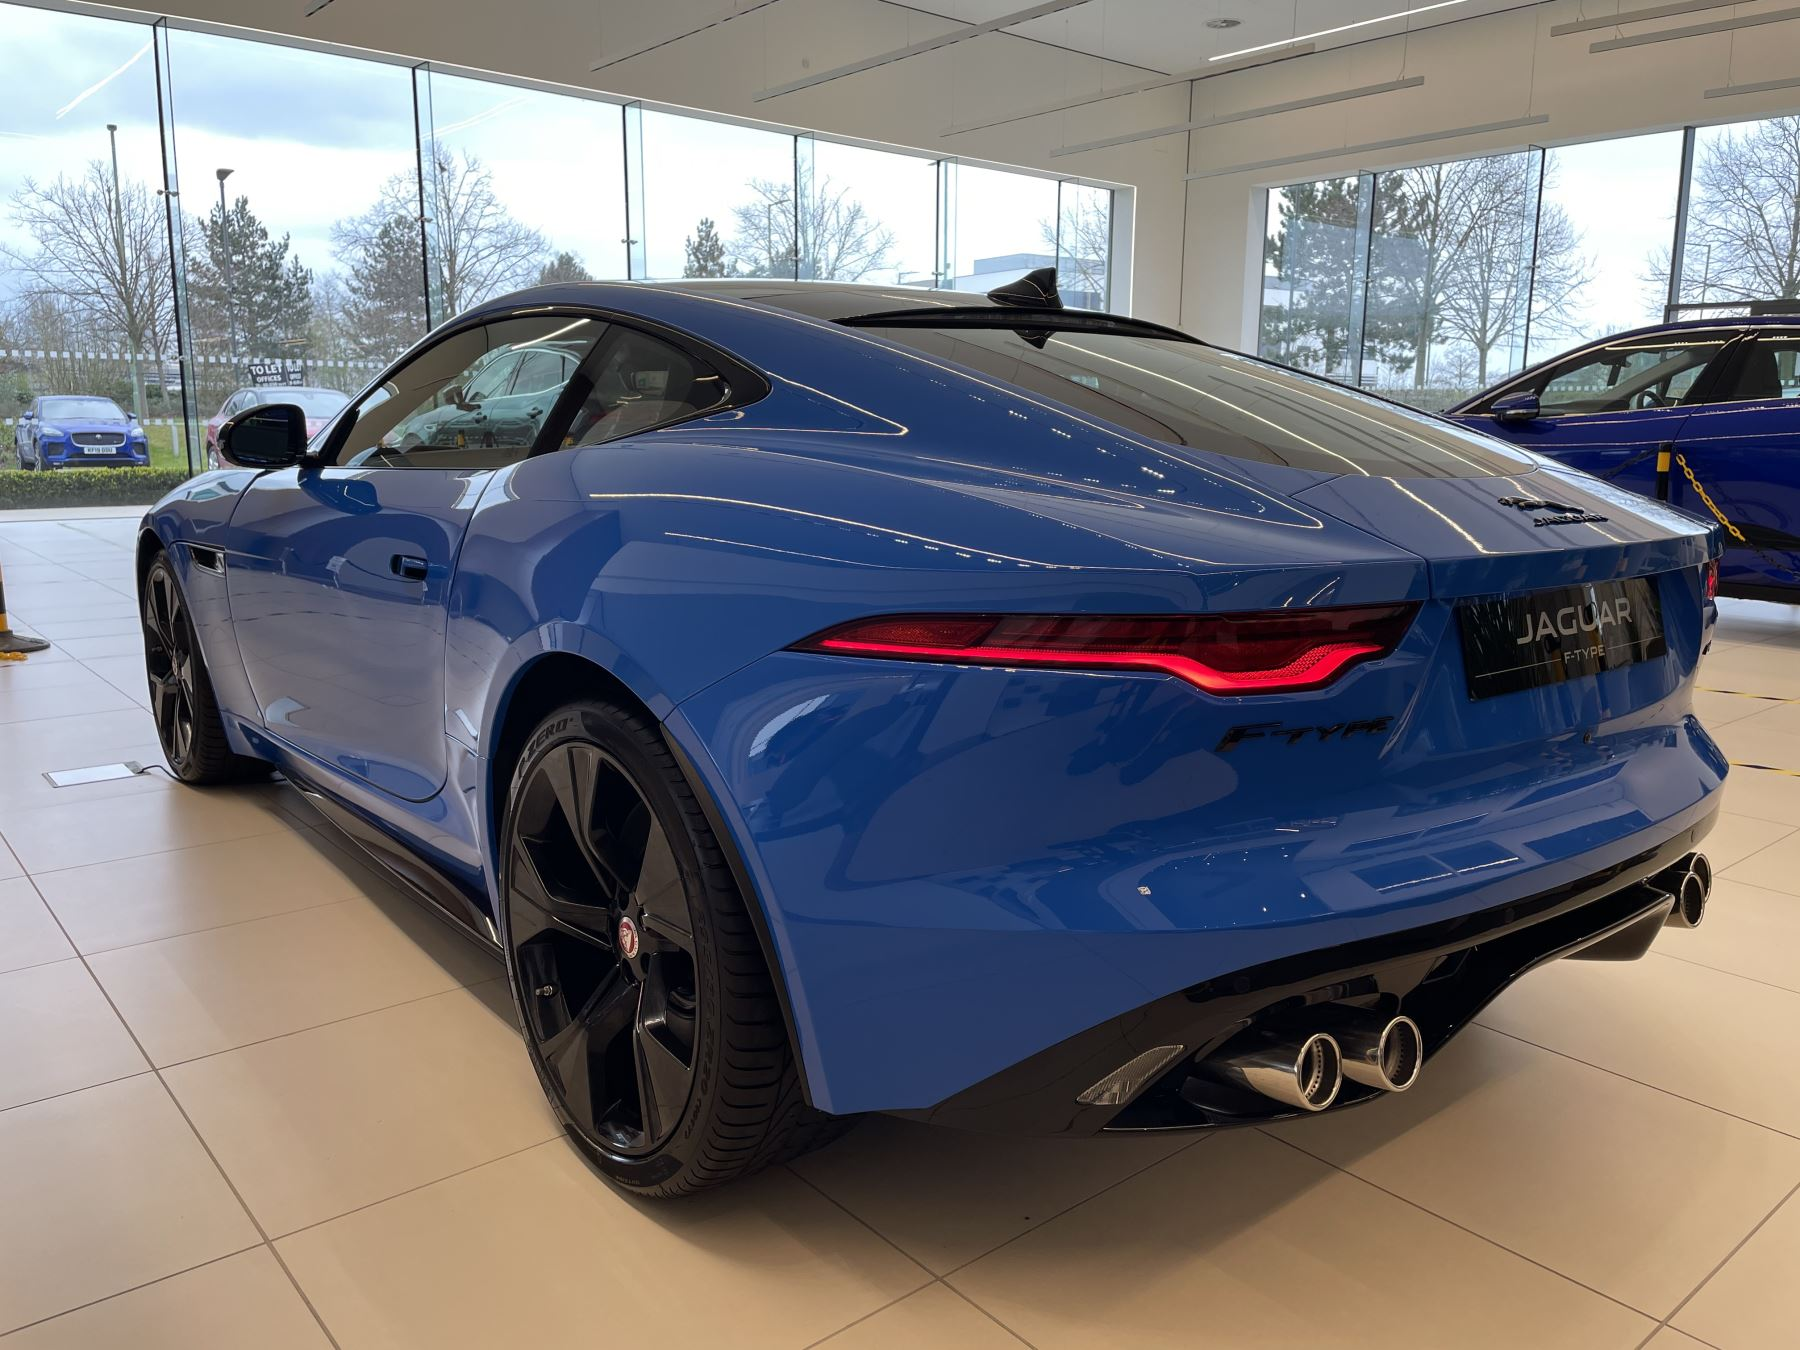 Jaguar F-TYPE 5.0 P450 Supercharged V8 Reims Edition 2dr Auto image 4